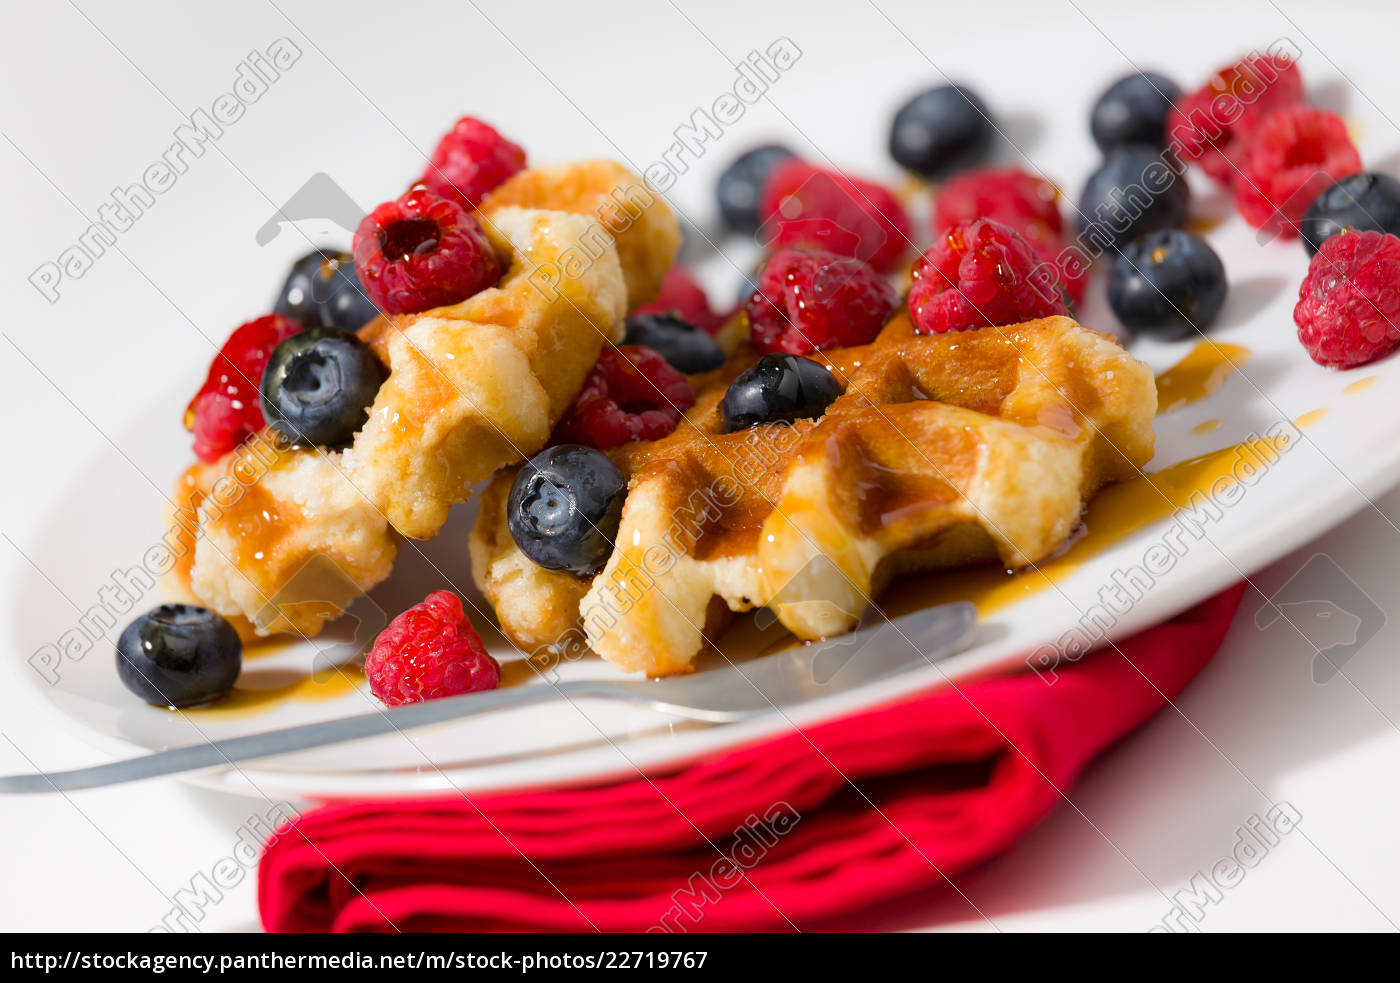 close-up, of, waffles, with, berries, and - 22719767